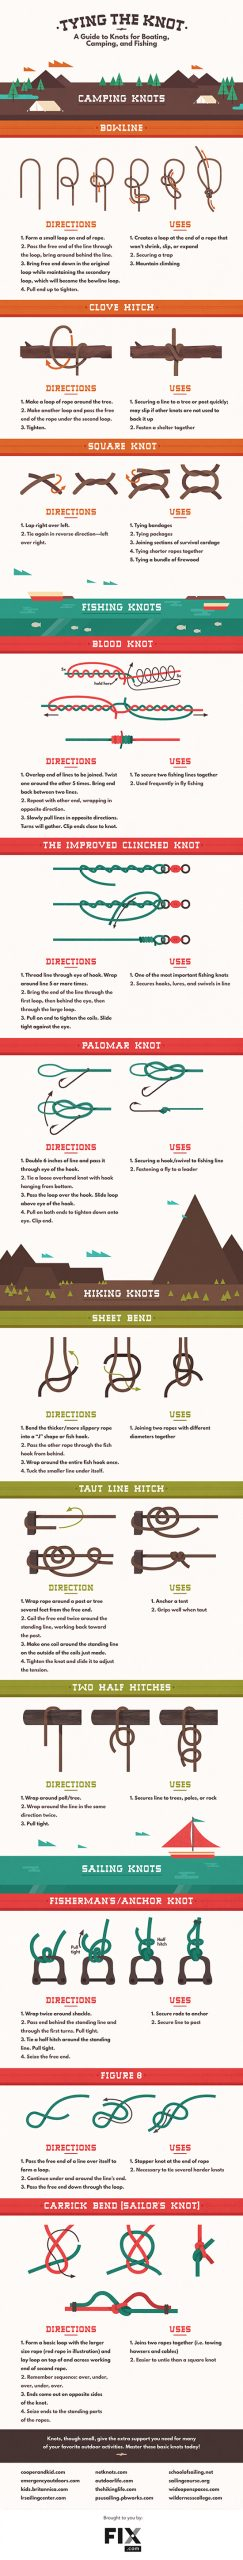 a step by step guide on how to tie different kinds of knots